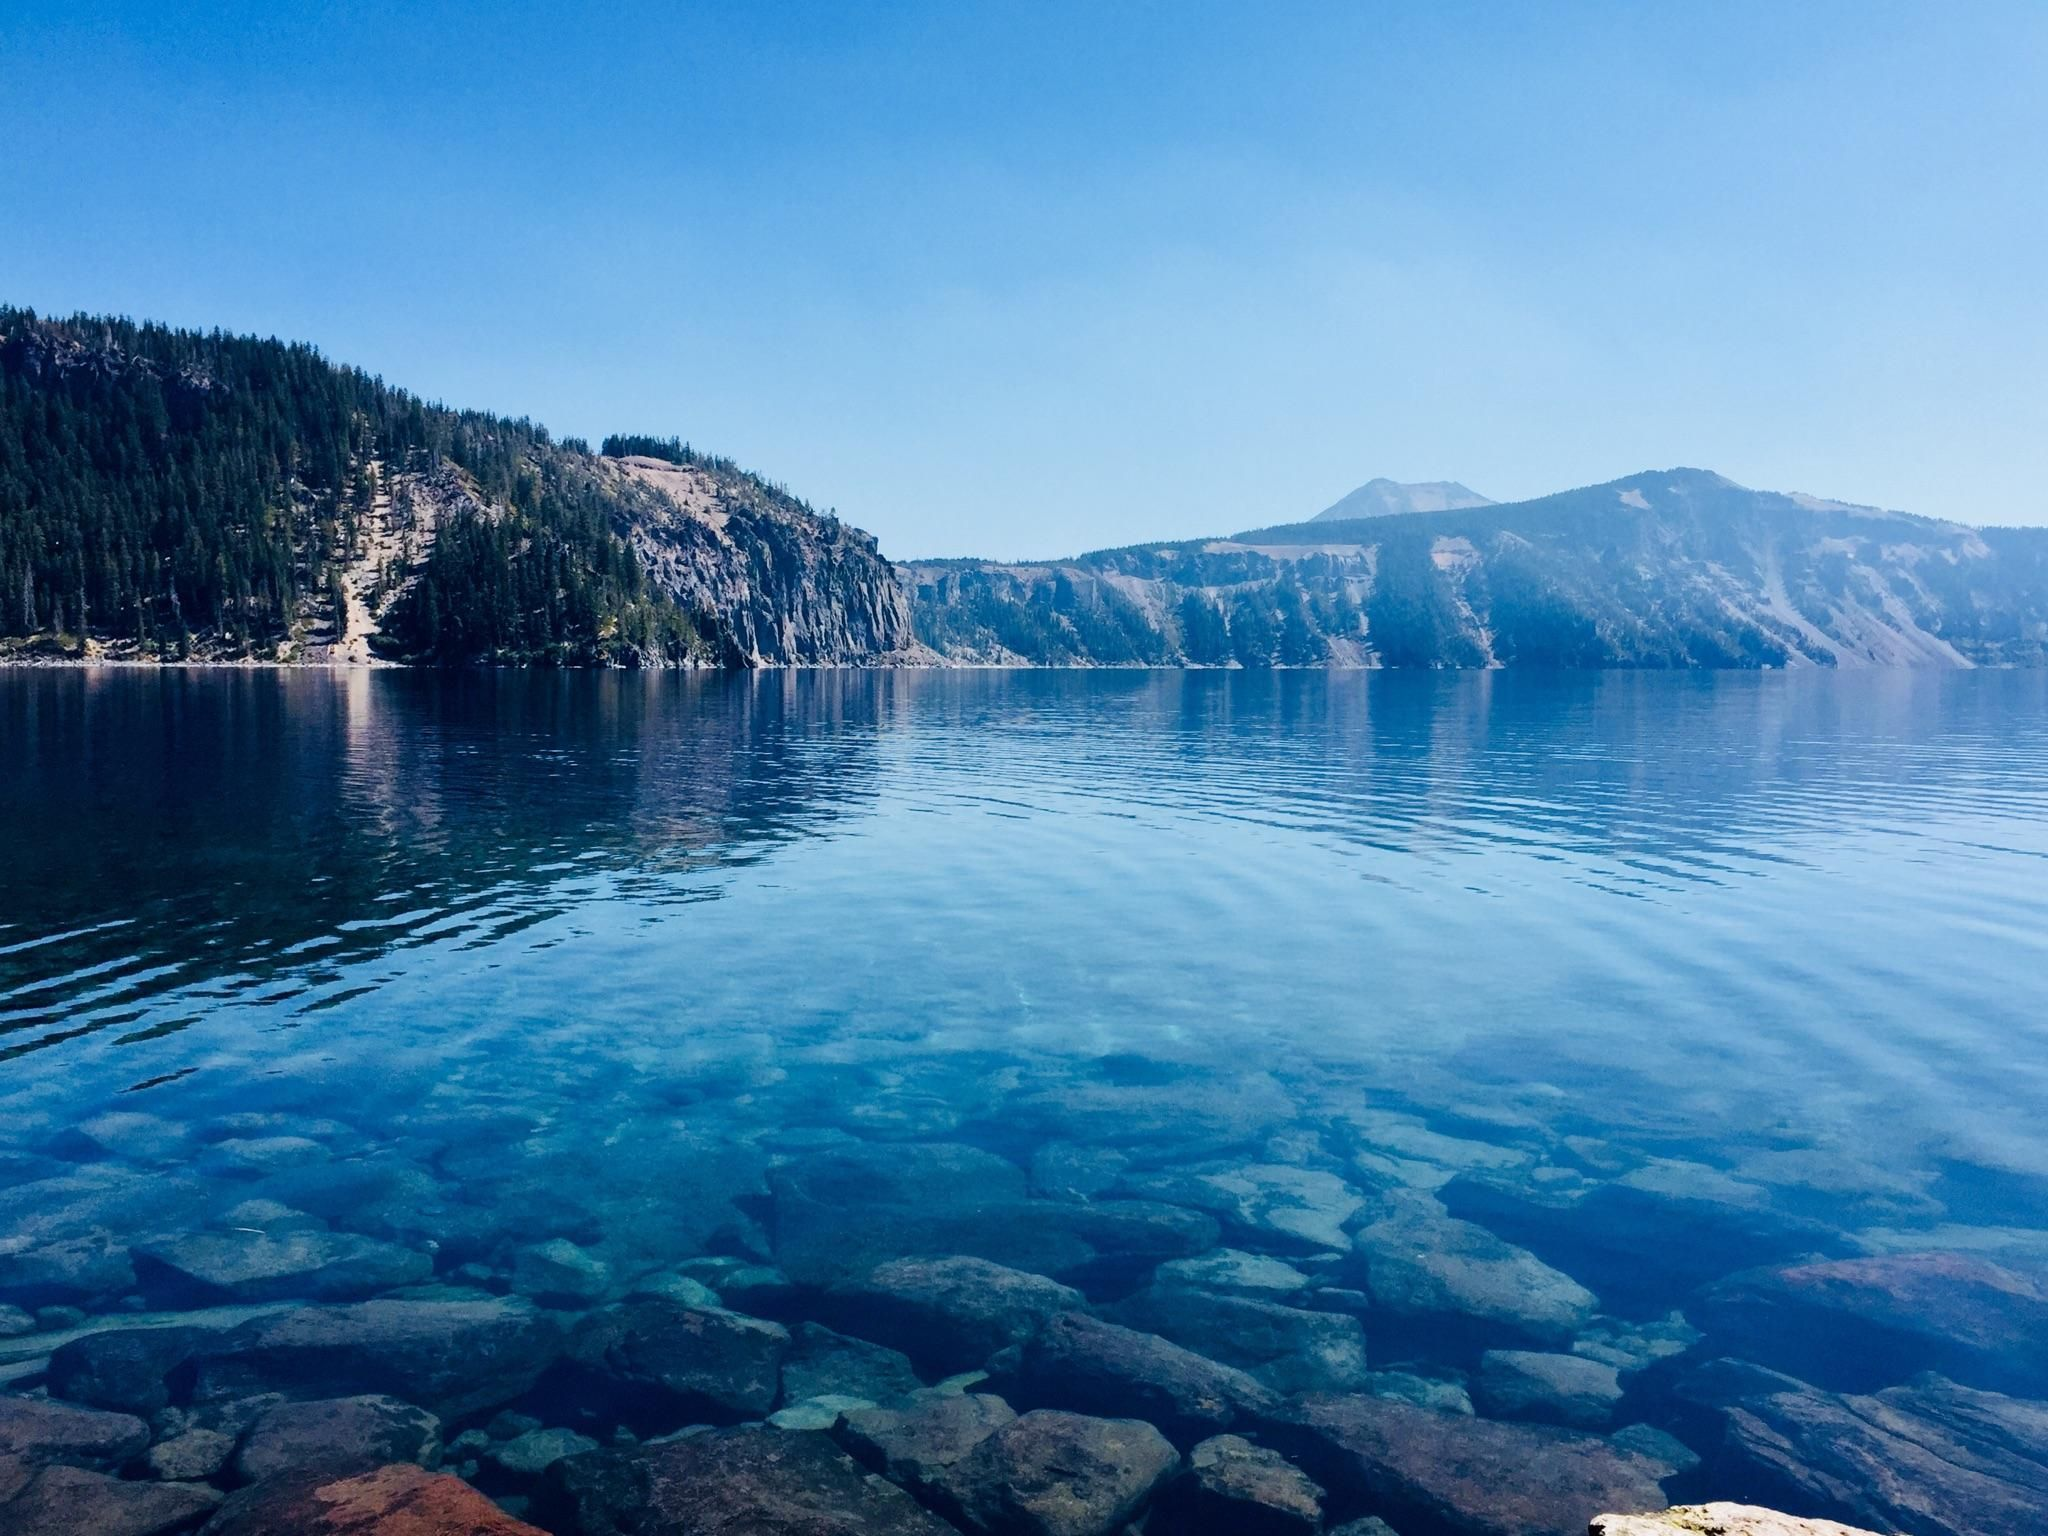 Crater lake Oregon [OC] [2048 x 1536] #craterlakeoregon Crater lake Oregon [OC] [2048 x 1536] #craterlakeoregon Crater lake Oregon [OC] [2048 x 1536] #craterlakeoregon Crater lake Oregon [OC] [2048 x 1536] #craterlakeoregon Crater lake Oregon [OC] [2048 x 1536] #craterlakeoregon Crater lake Oregon [OC] [2048 x 1536] #craterlakeoregon Crater lake Oregon [OC] [2048 x 1536] #craterlakeoregon Crater lake Oregon [OC] [2048 x 1536] #craterlakeoregon Crater lake Oregon [OC] [2048 x 1536] #craterlakeore #craterlakeoregon